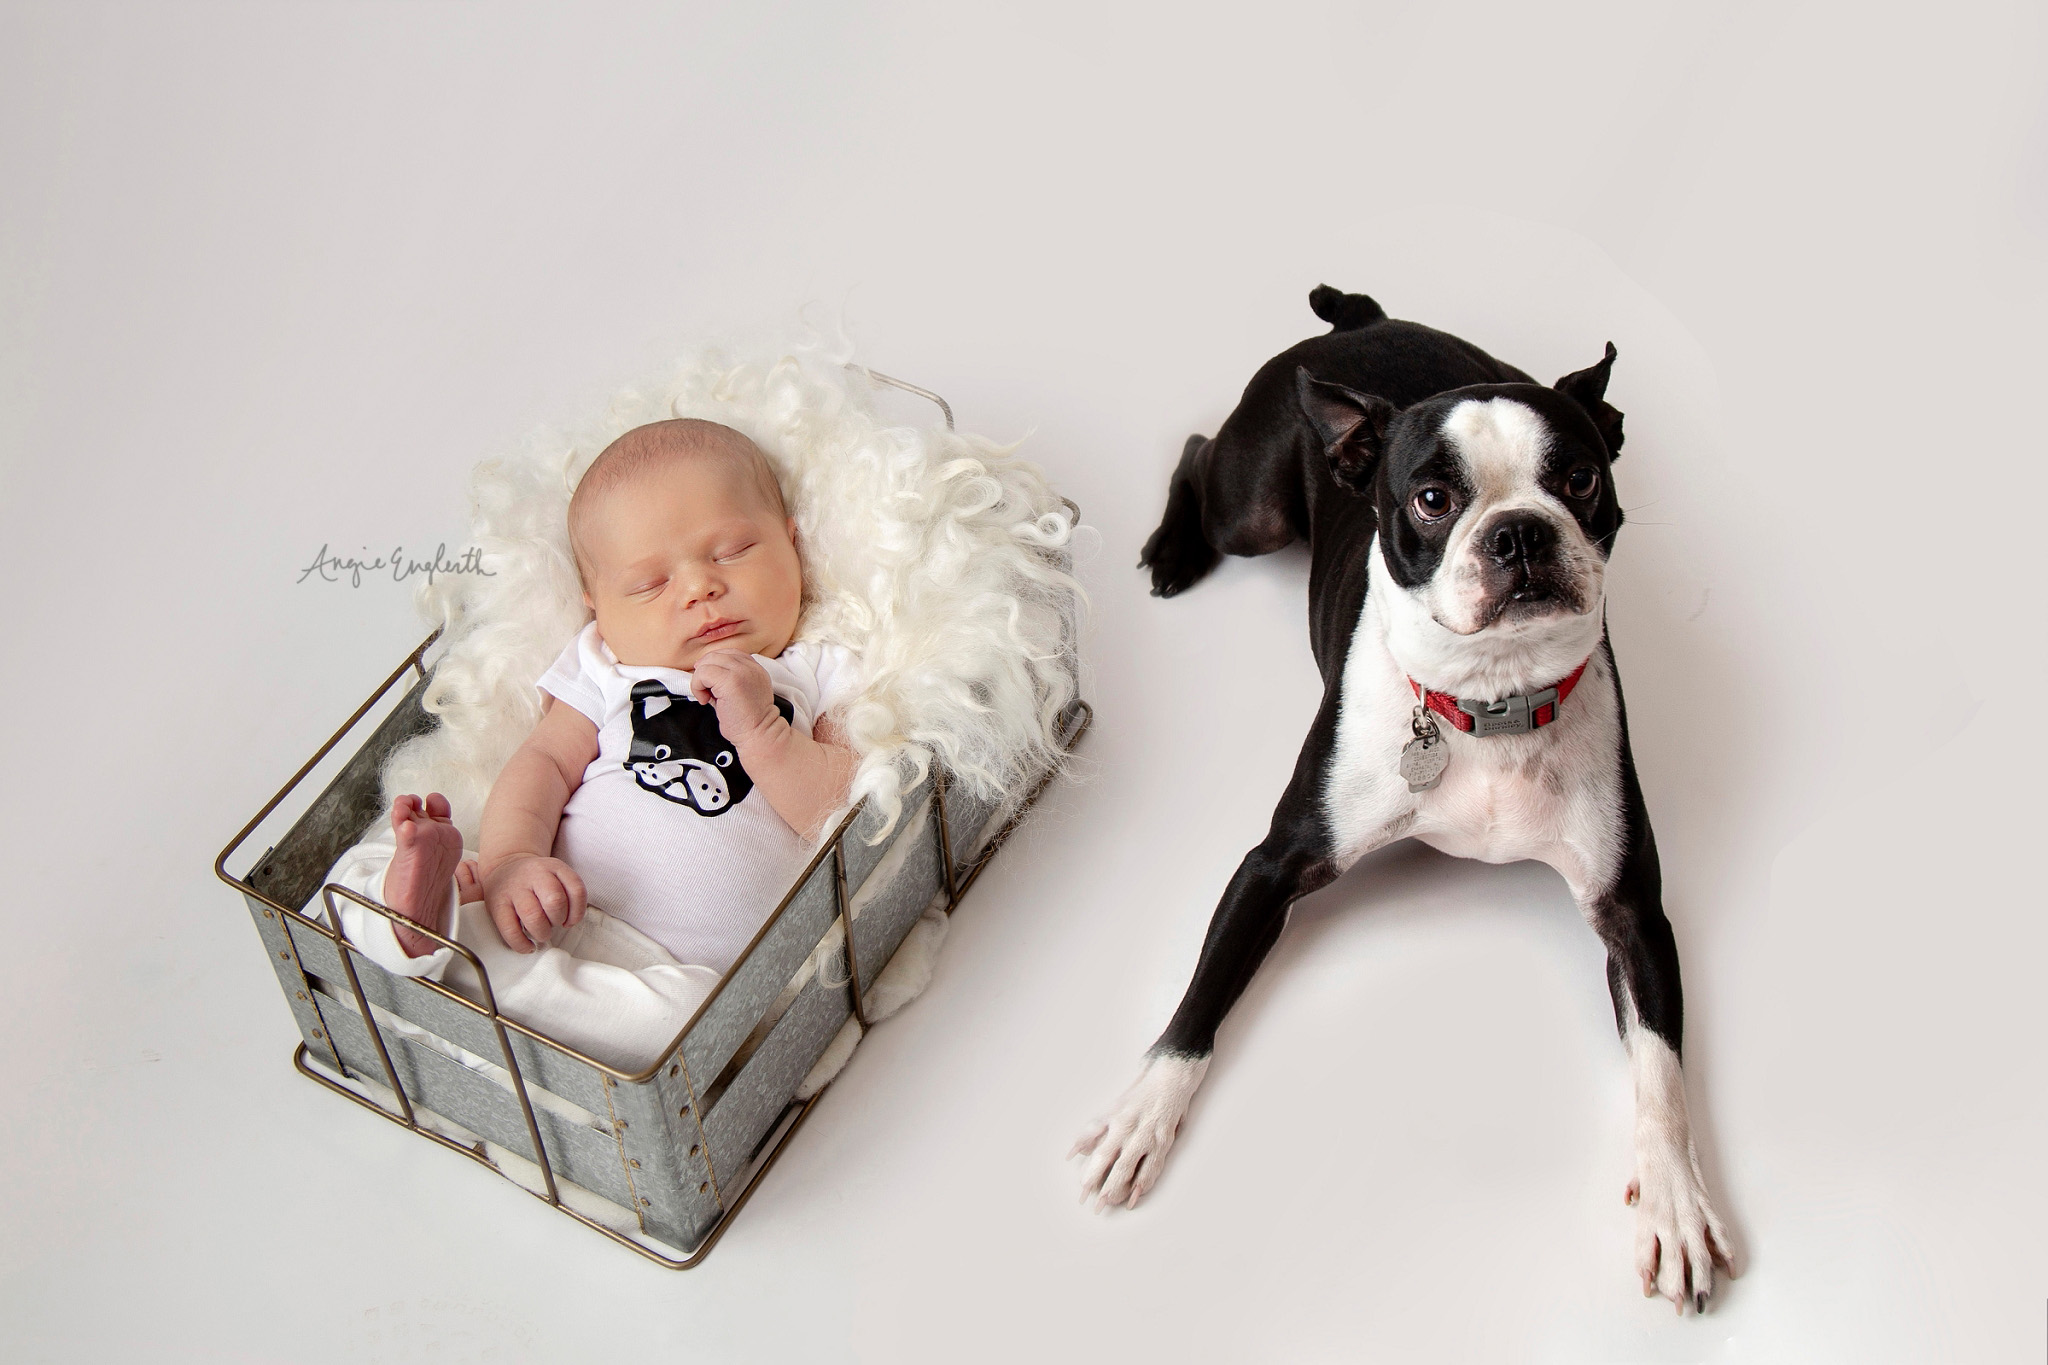 lancaster_newborn_photographer_angie_englerth_central_pa_028.jpg